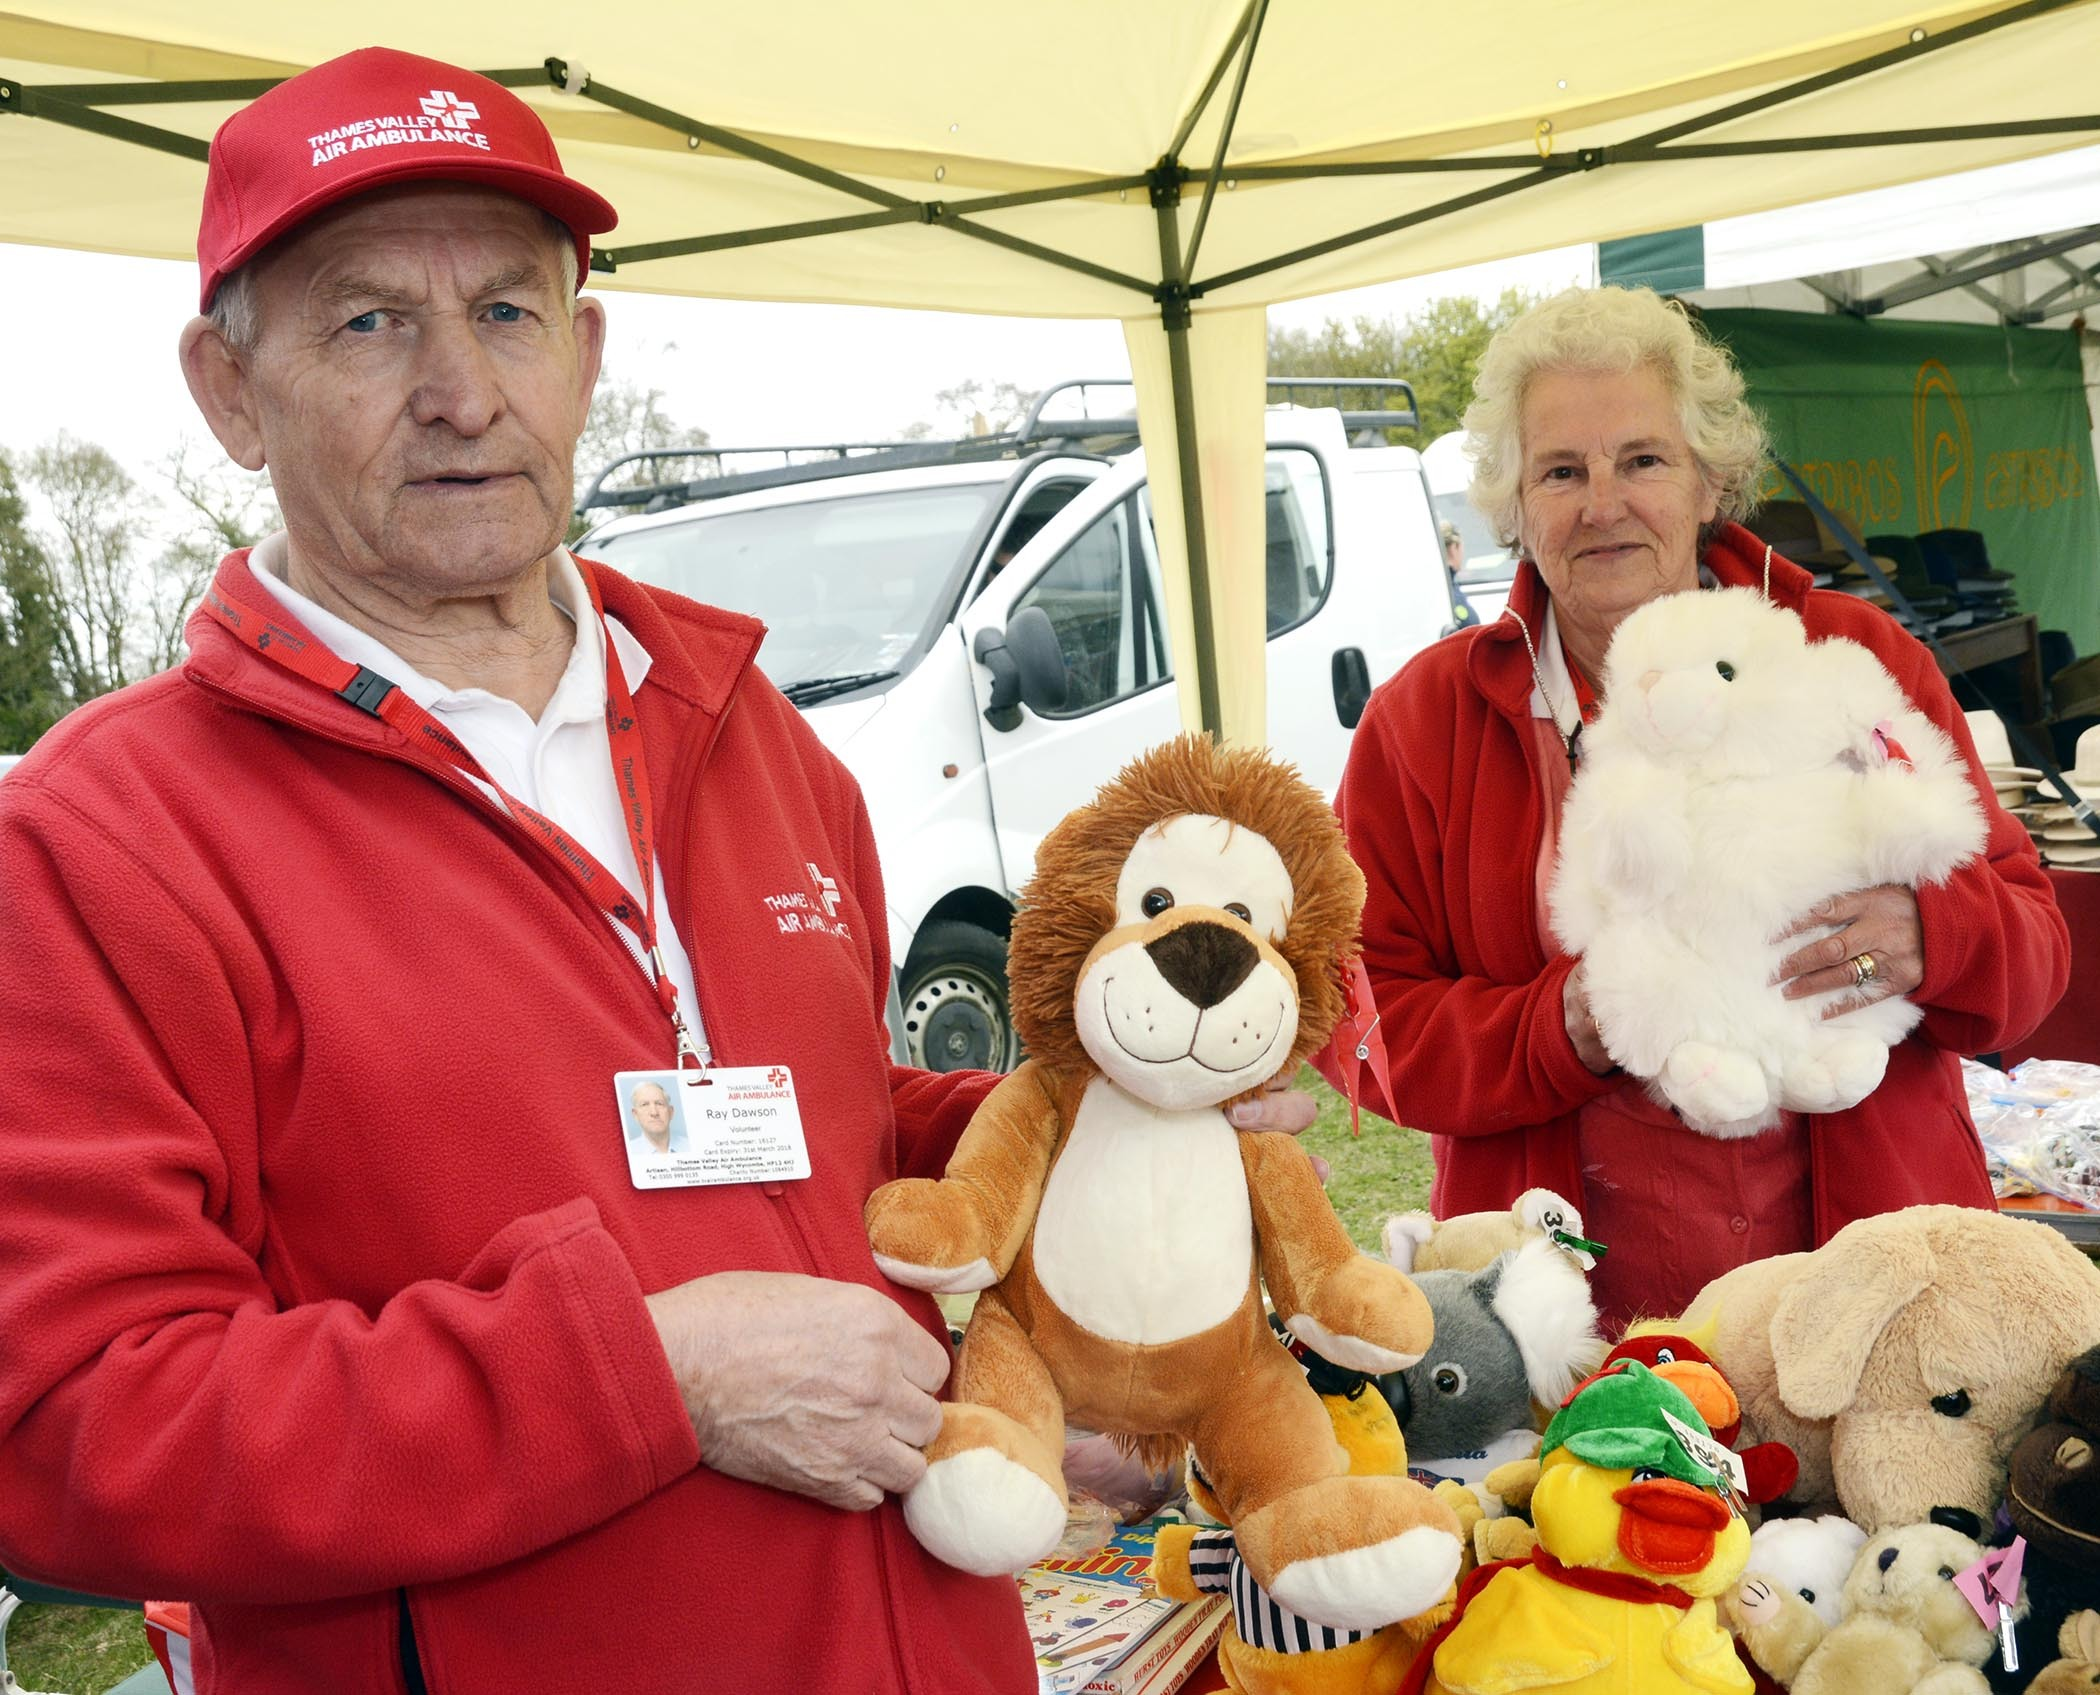 Ray Dawson and Janet Dawson of Grove raising funds for Thames Valley Air Ambulance at Lambourn Open Day. Picture: Paul Johns